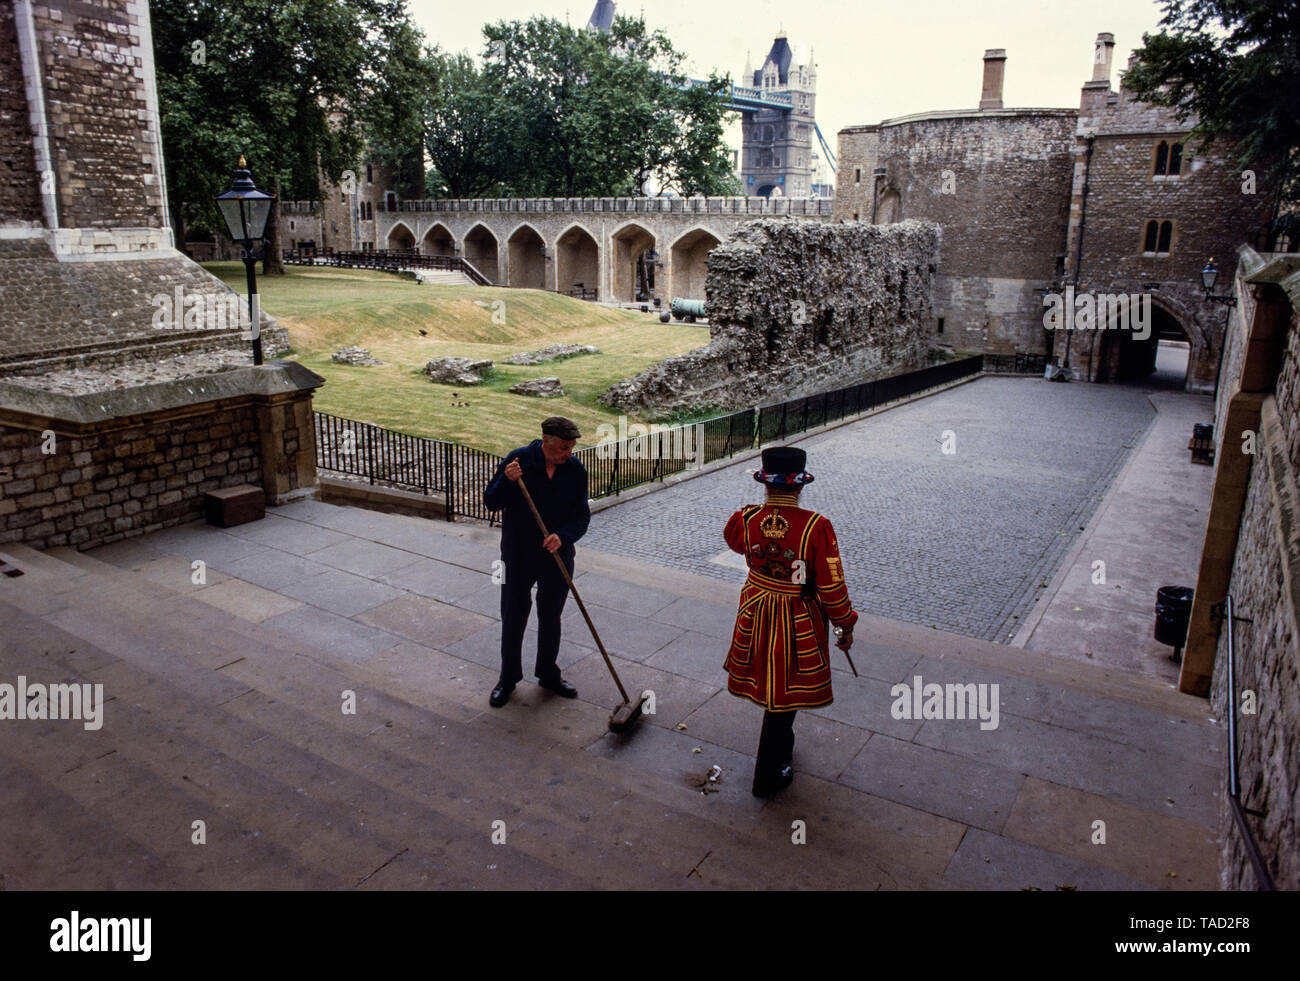 Tower of London, London England 1985 Photographs taken with permission for Illustrated London News magazine in 1985 where I had access behind the scenes before and after The Tower opened and closed to the public. The Tower of London, officially Her Majesty's Royal Palace and Fortress of the Tower of London, is a historic castle located on the north bank of the River Thames in central London. It lies within the London Borough of Tower Hamlets, separated from the eastern edge of the square mile of the City of London by the open space known as Tower Hill. It was founded towards the end of 1066 as Stock Photo